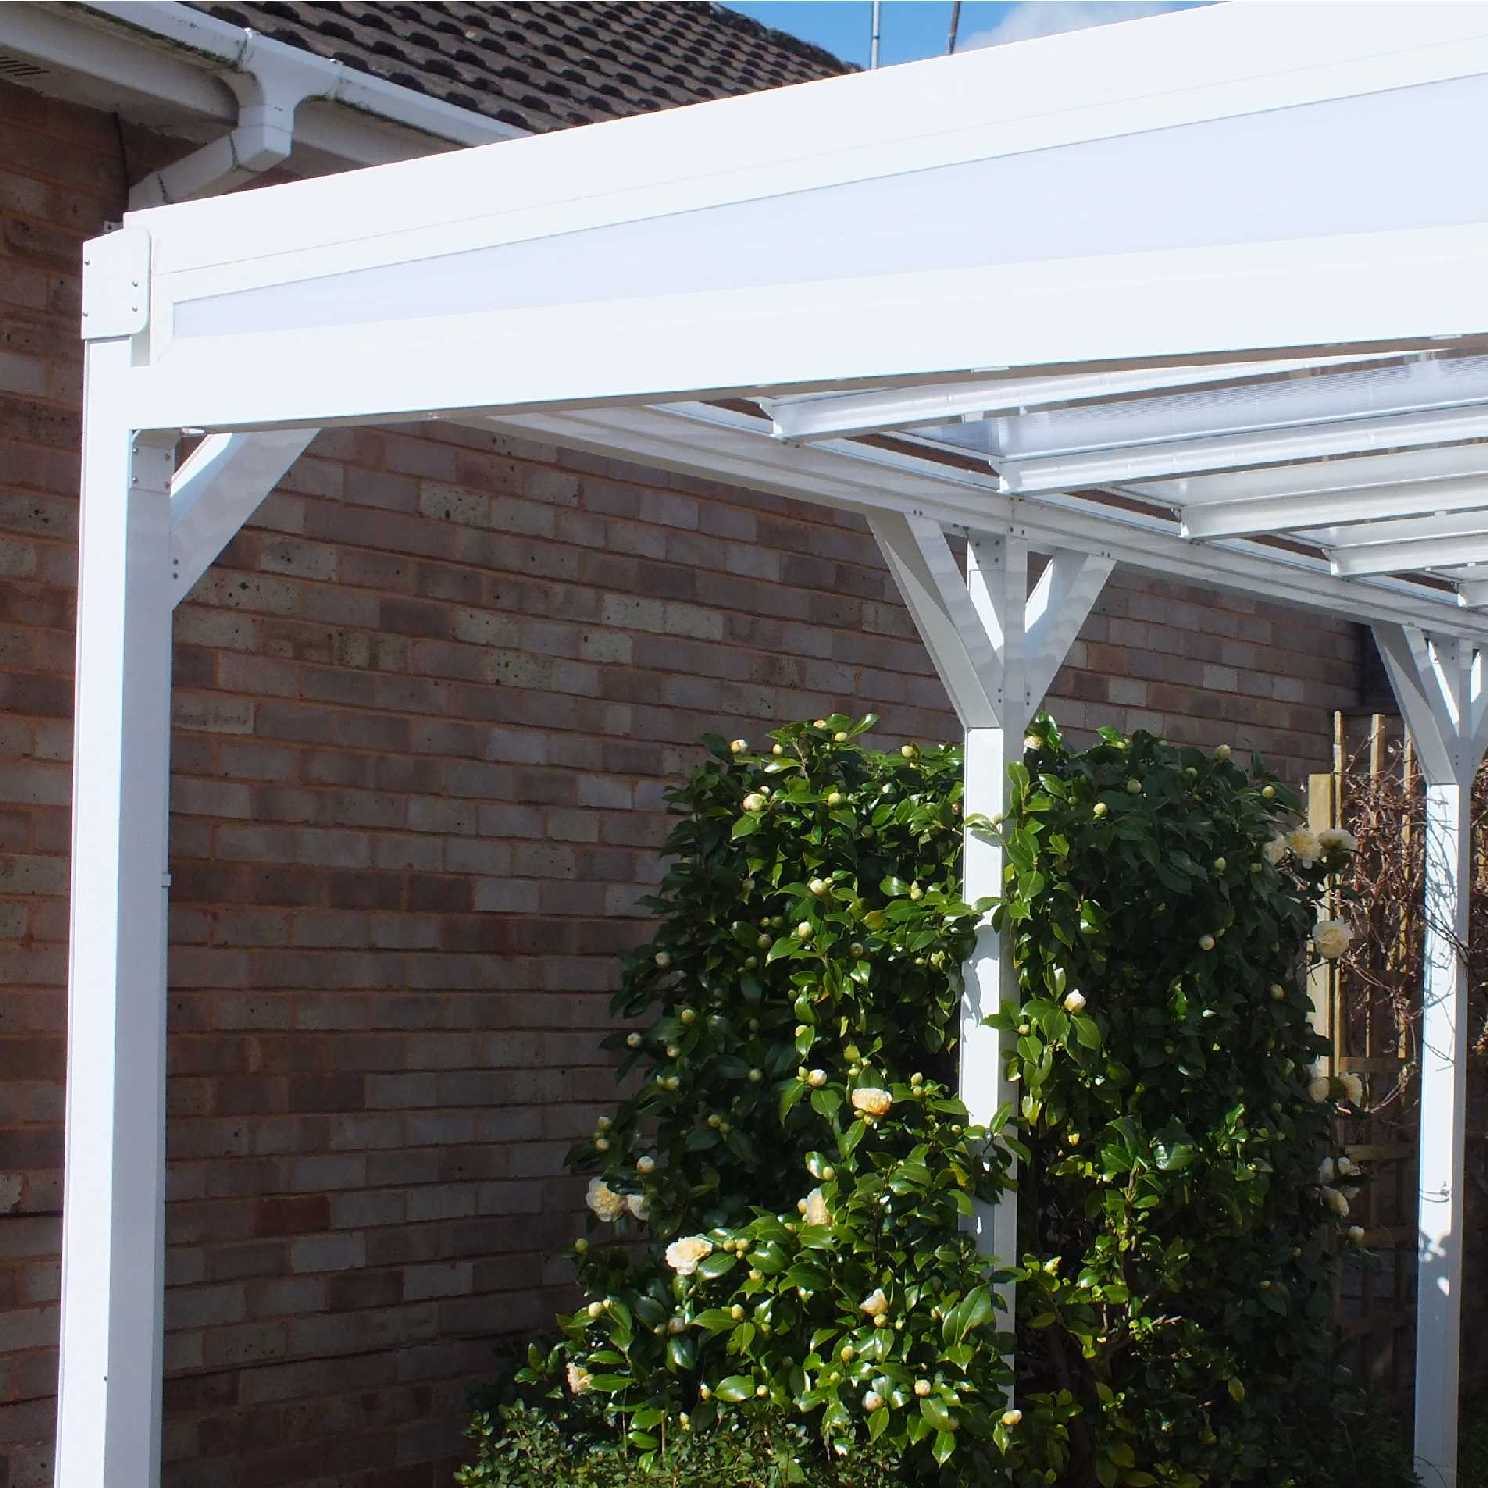 Omega Smart Lean-To Canopy with 16mm Polycarbonate Glazing - 9.5m (W) x 2.0m (P), (5) Supporting Posts from Omega Build